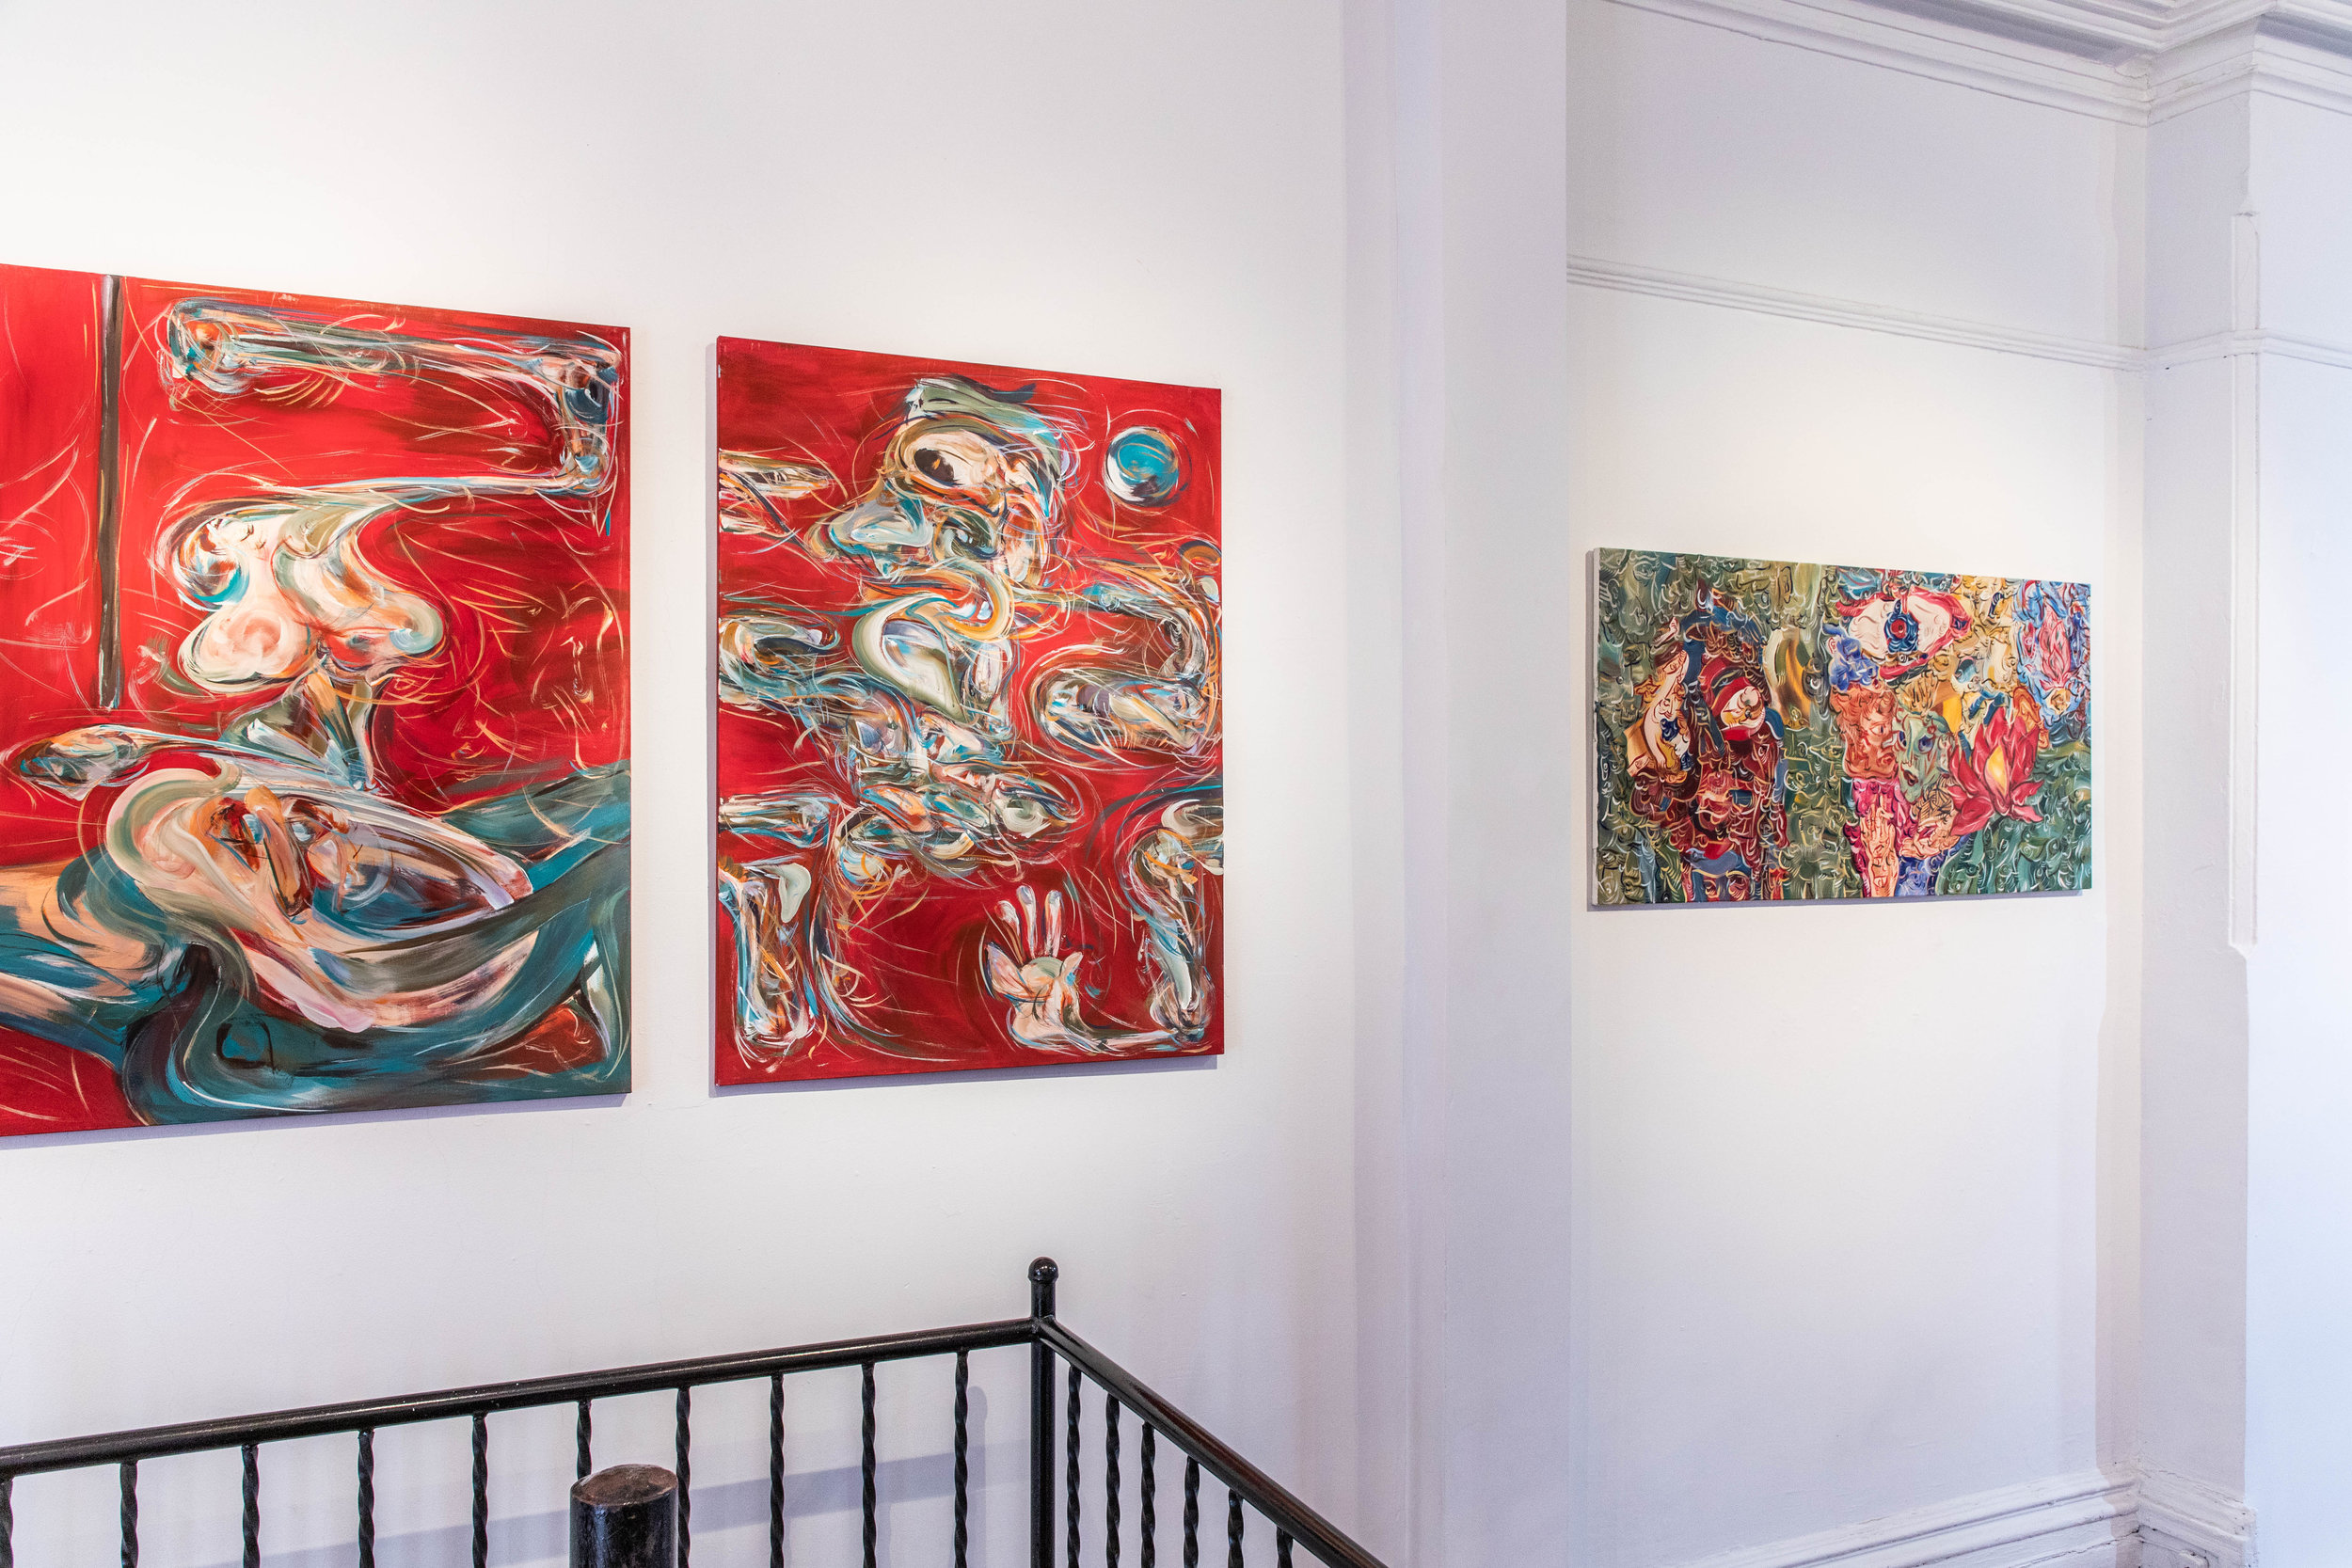 Artificial Boundary  installation view, paintings by Yuan Fang, photograph by Yuan Fang ©Yuan Fang, courtesy Fou Gallery